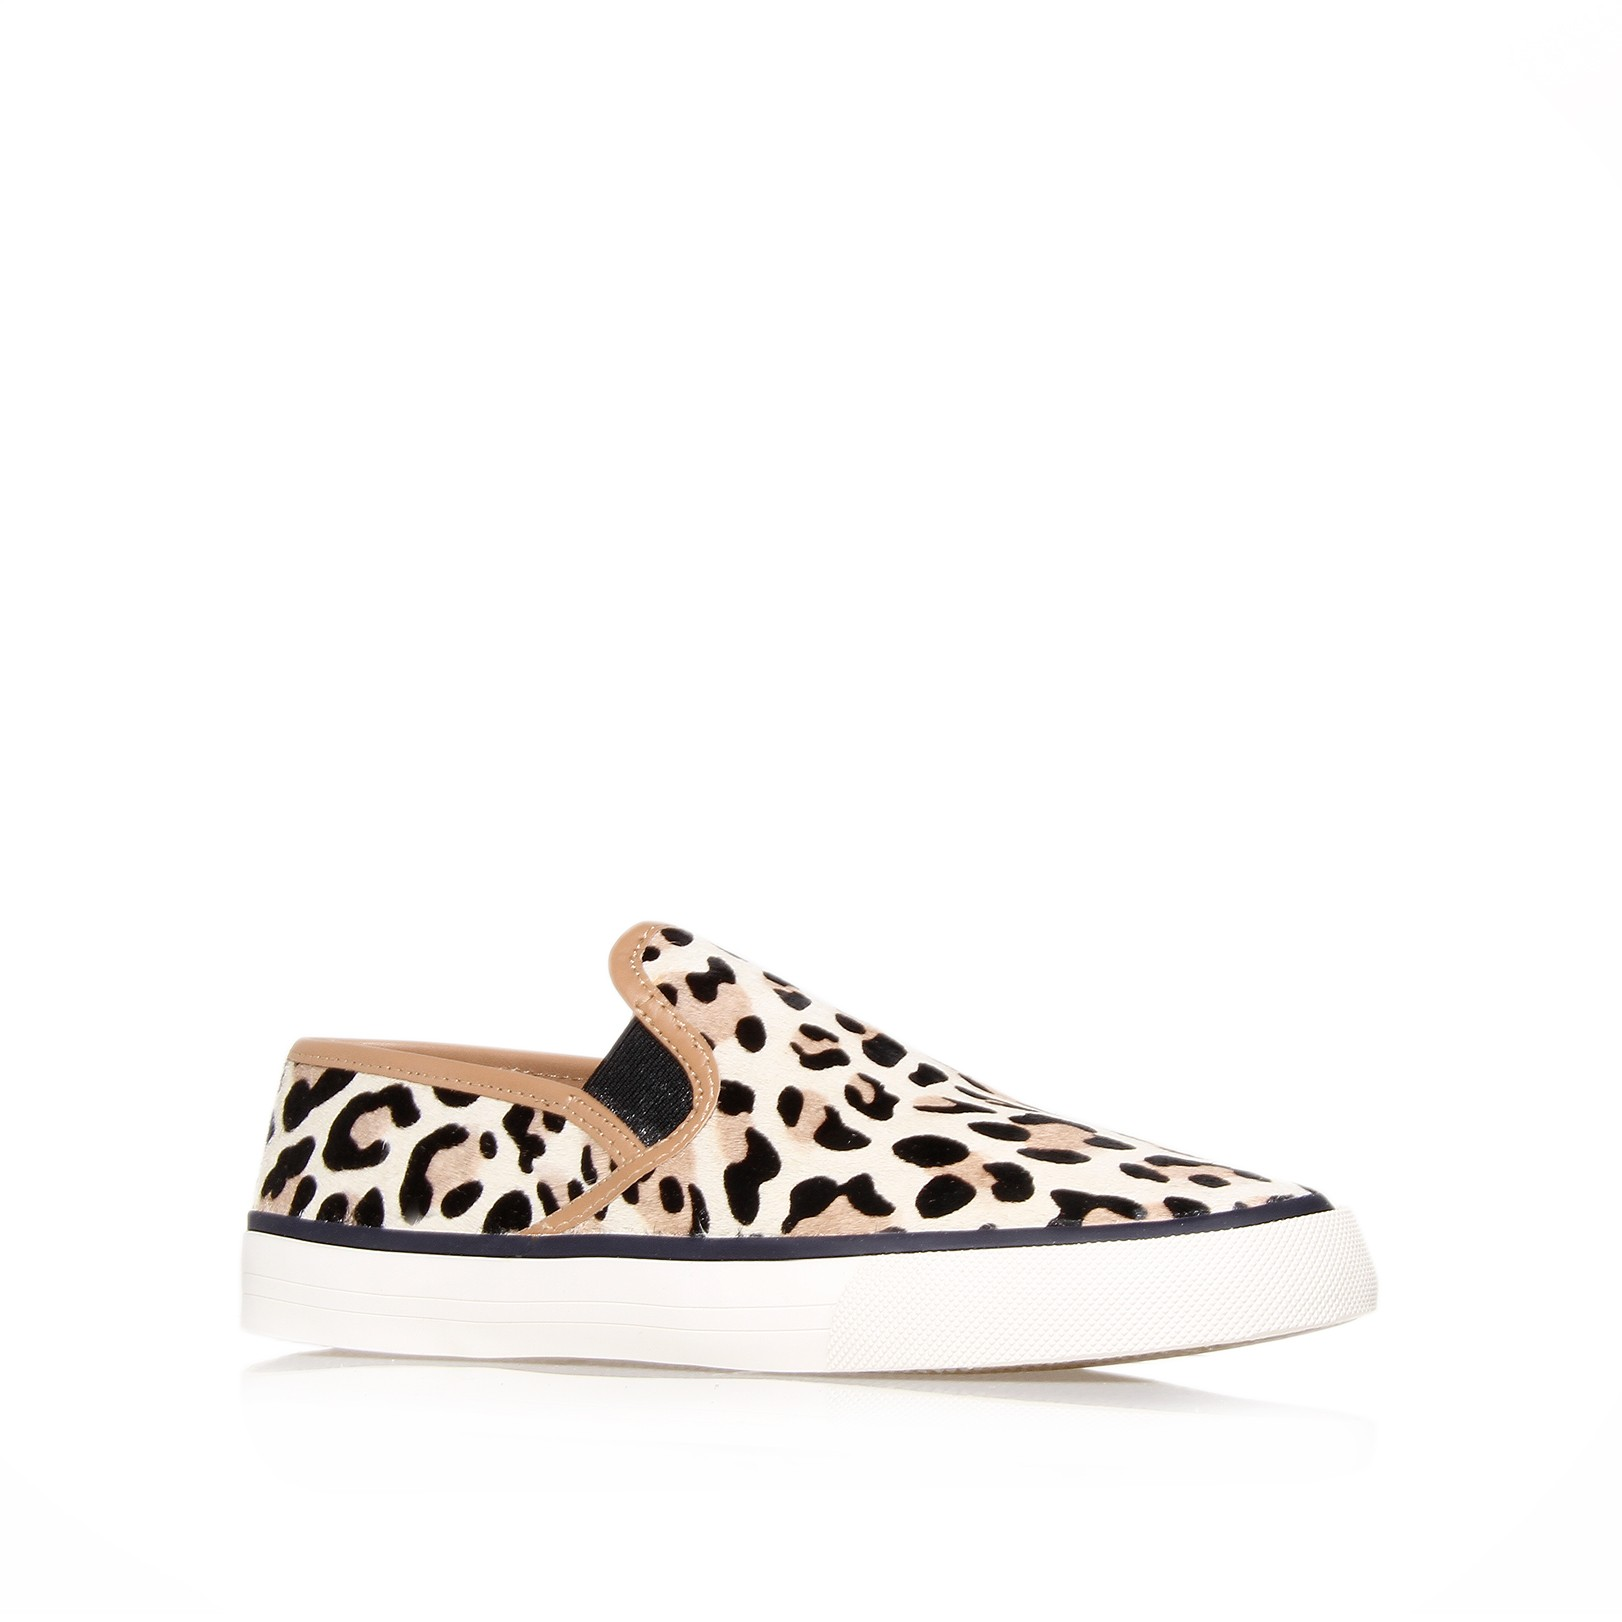 Kurt Geiger |  LAUREL - Shoes - Women